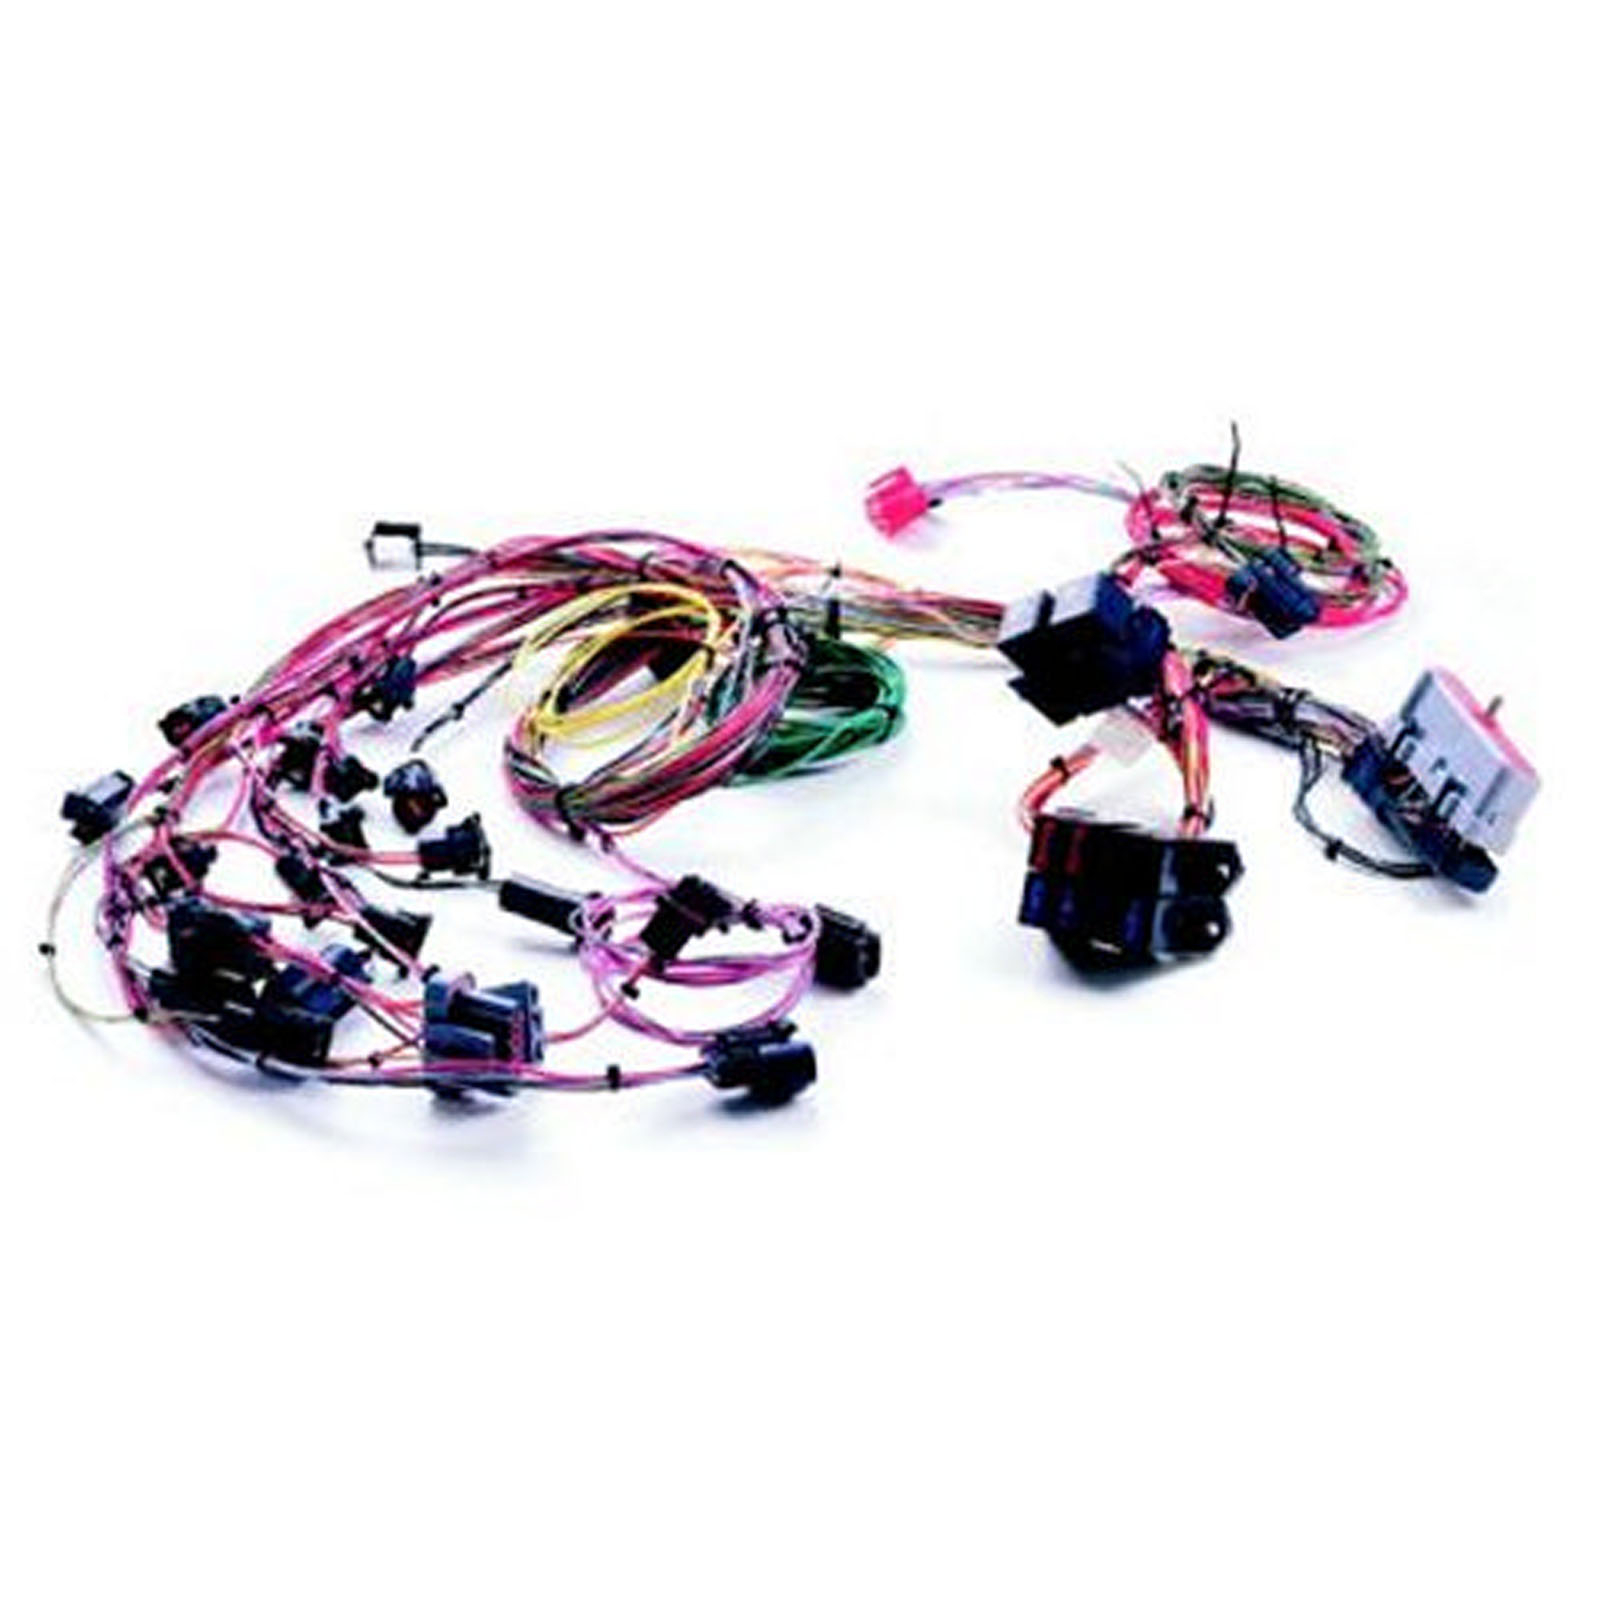 PWI60510 5 0l efi wiring harness painless on 5 download wirning diagrams Ford Engine Wiring Harness at soozxer.org